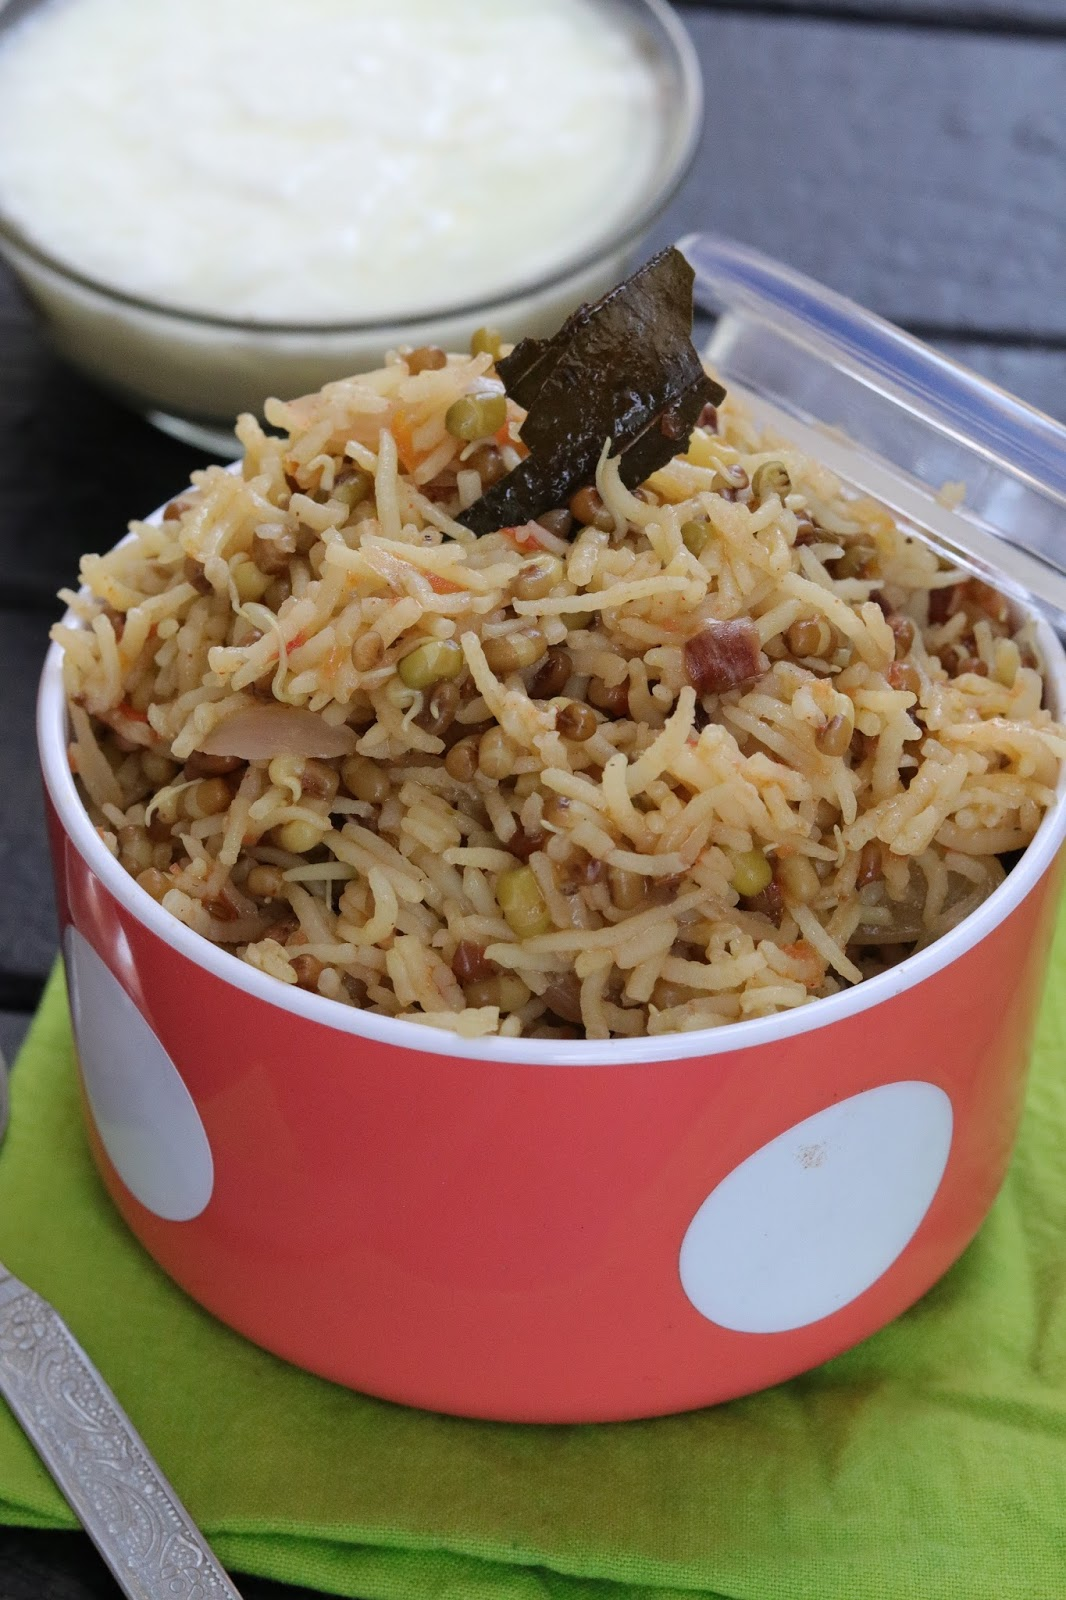 Healthy sprouts pulao in rice cooker healthy kadai see how to make healthy sprouts pulao in rice cooker pulao is a one pot meal a perfect indian dish to serve a main course meal rice cooker recipes are forumfinder Choice Image